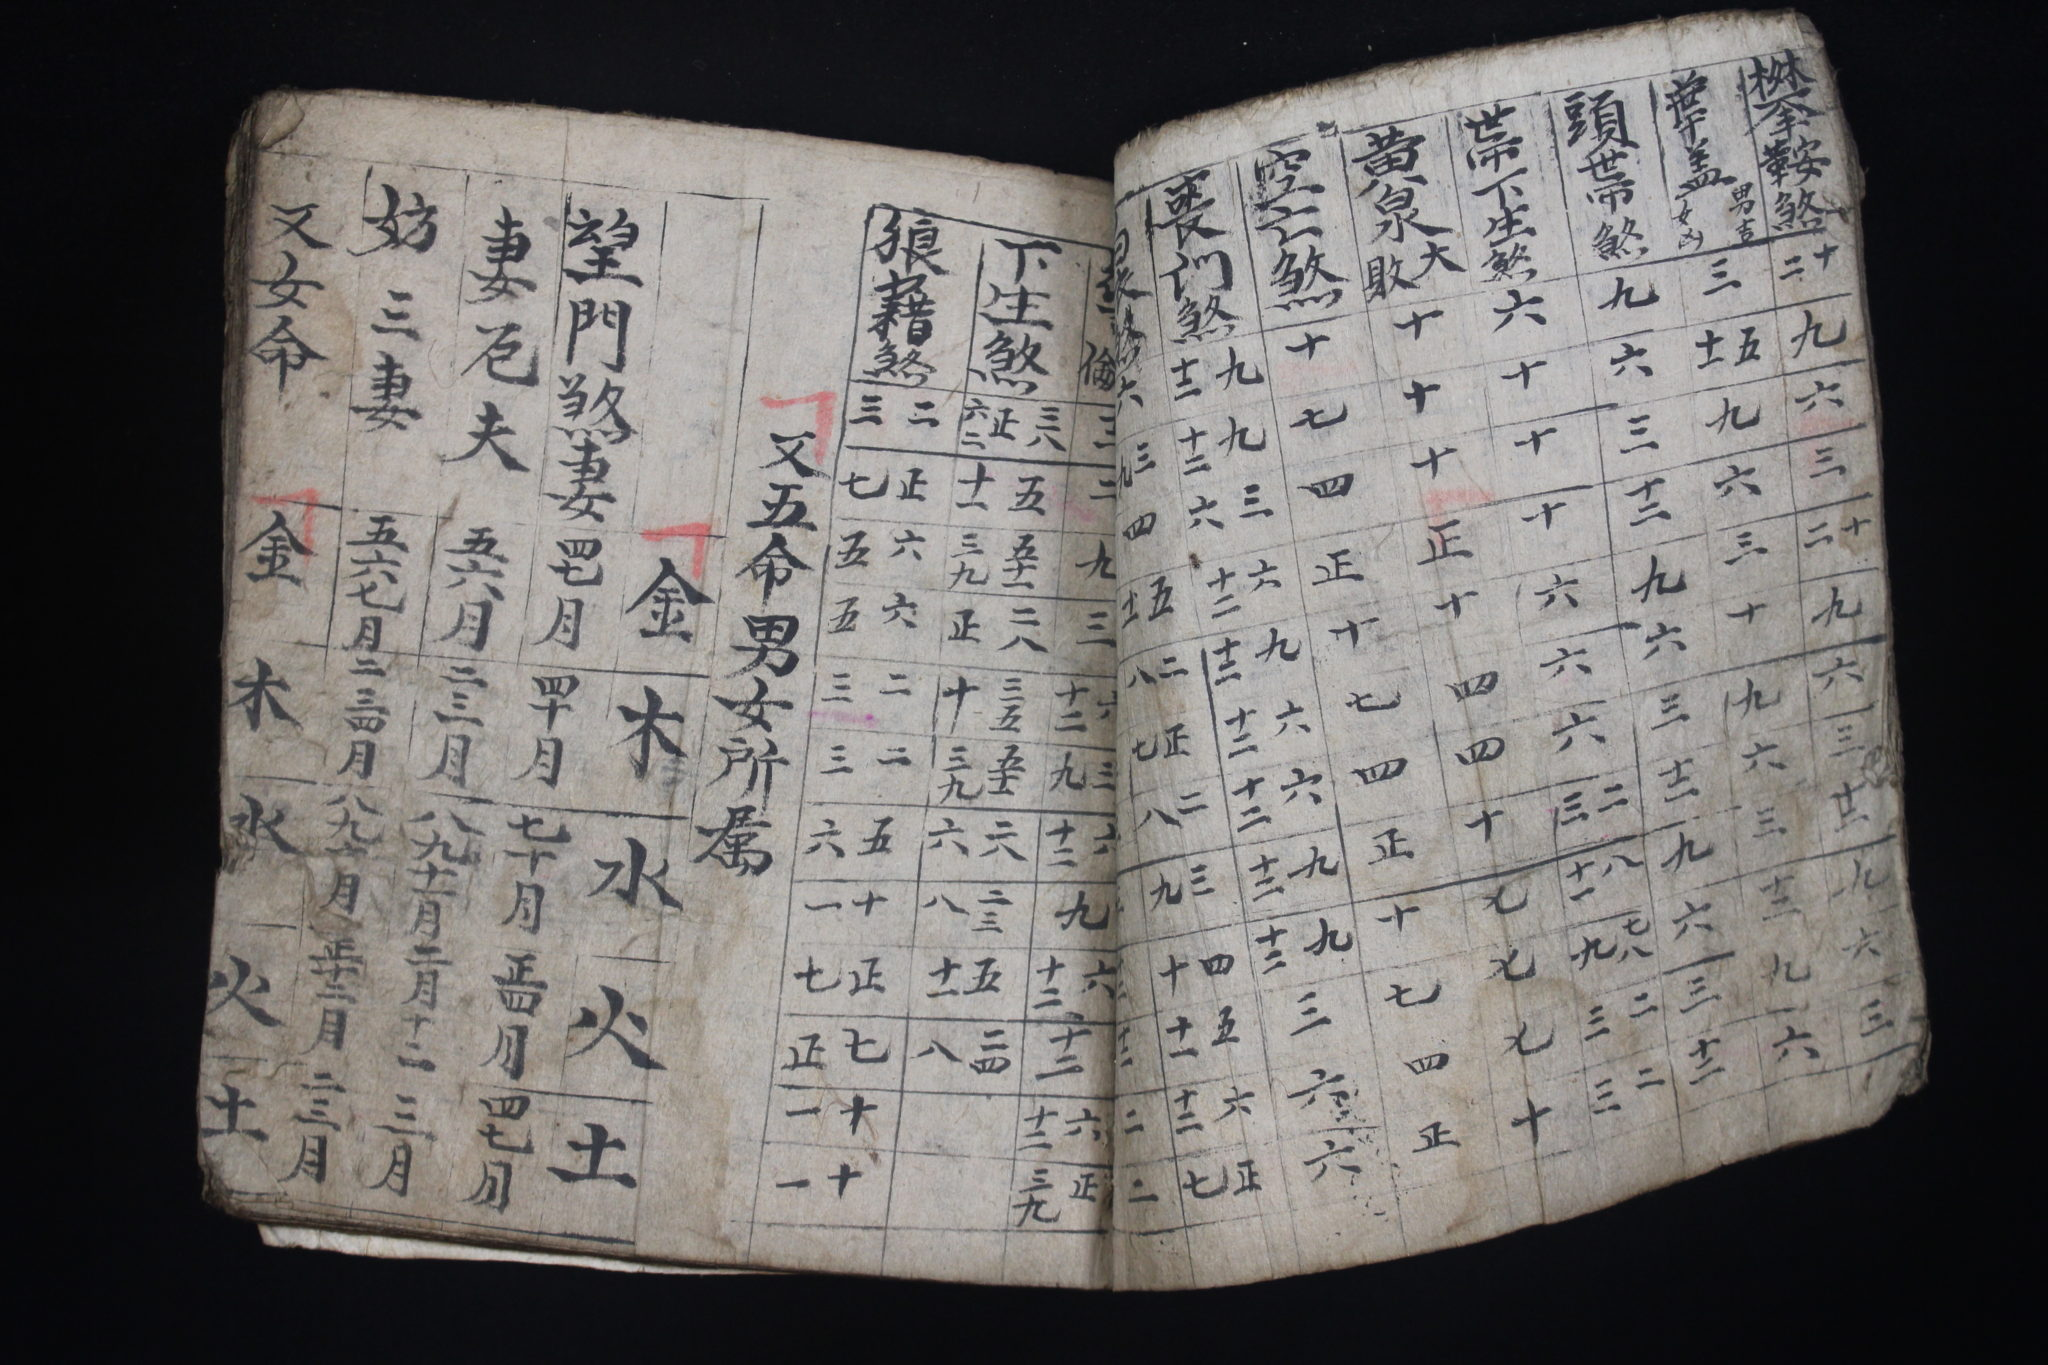 """Inside Detail of Shaman's Personal Instruction Book, Cao Bang province, Vietnam, Early 20th c, Ink on handmade mulberry paper (tapa), Written in Nom (Chinese characters adapted to Vietnamese), books are an integral part of a shaman's repertoire. They range from explanations of various rituals and use of objects, to astrology, history, songs, laws, etiquette, children's tales, hunting practices, formulas, spells and Feng Shui. Shaman make their own books to help store their knowledge therefore no two are alike and a high level shaman will have a large library. 9 ½"""" x 8 ½"""" x ¾"""", $850."""